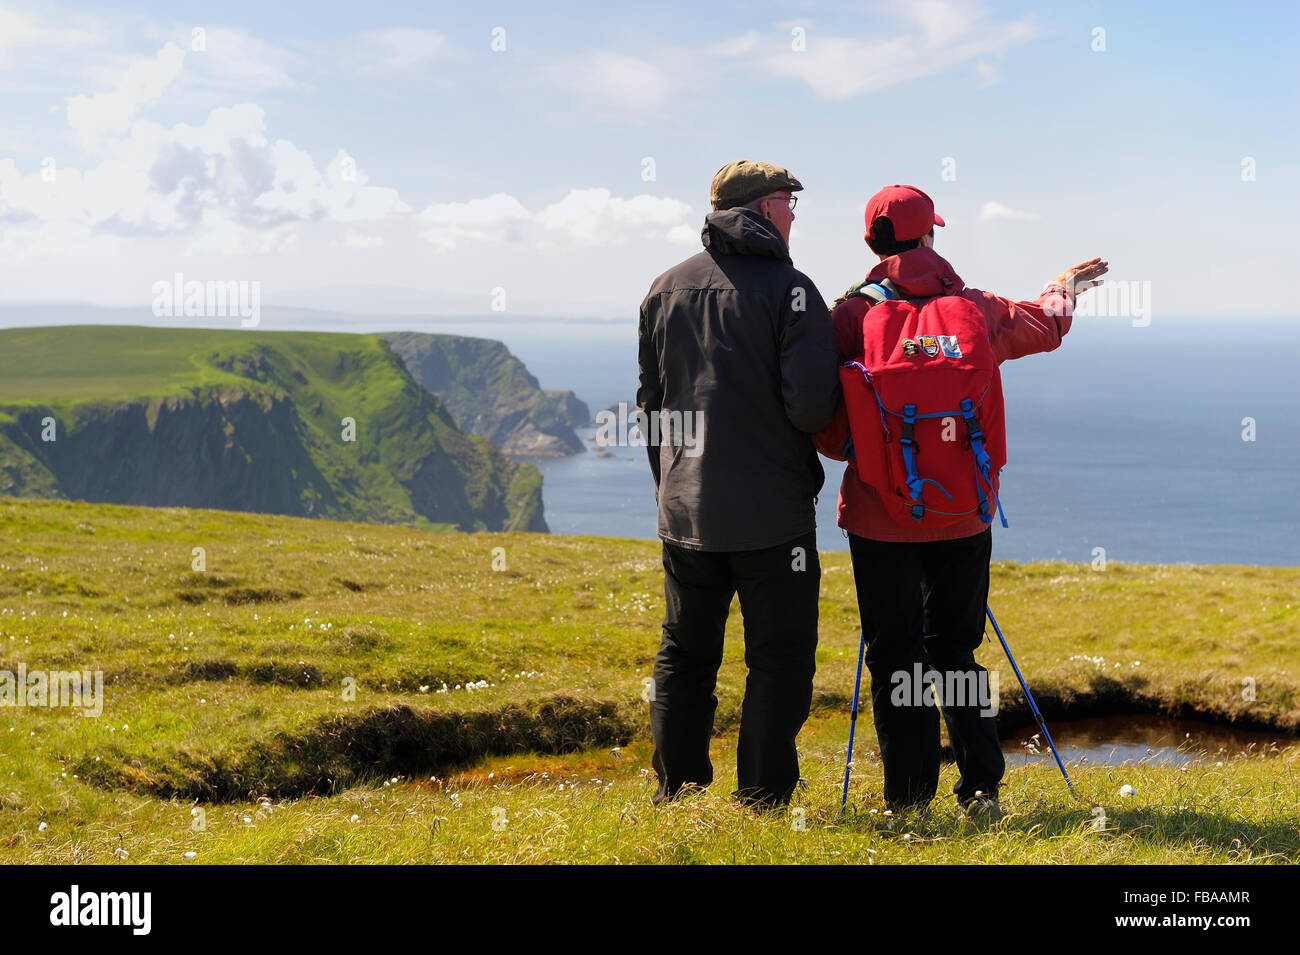 United Kingdom, Scotland, Shetland Islands, Unst, Hermaness, Senior couple looking at sea from grassy cliff - Stock Image